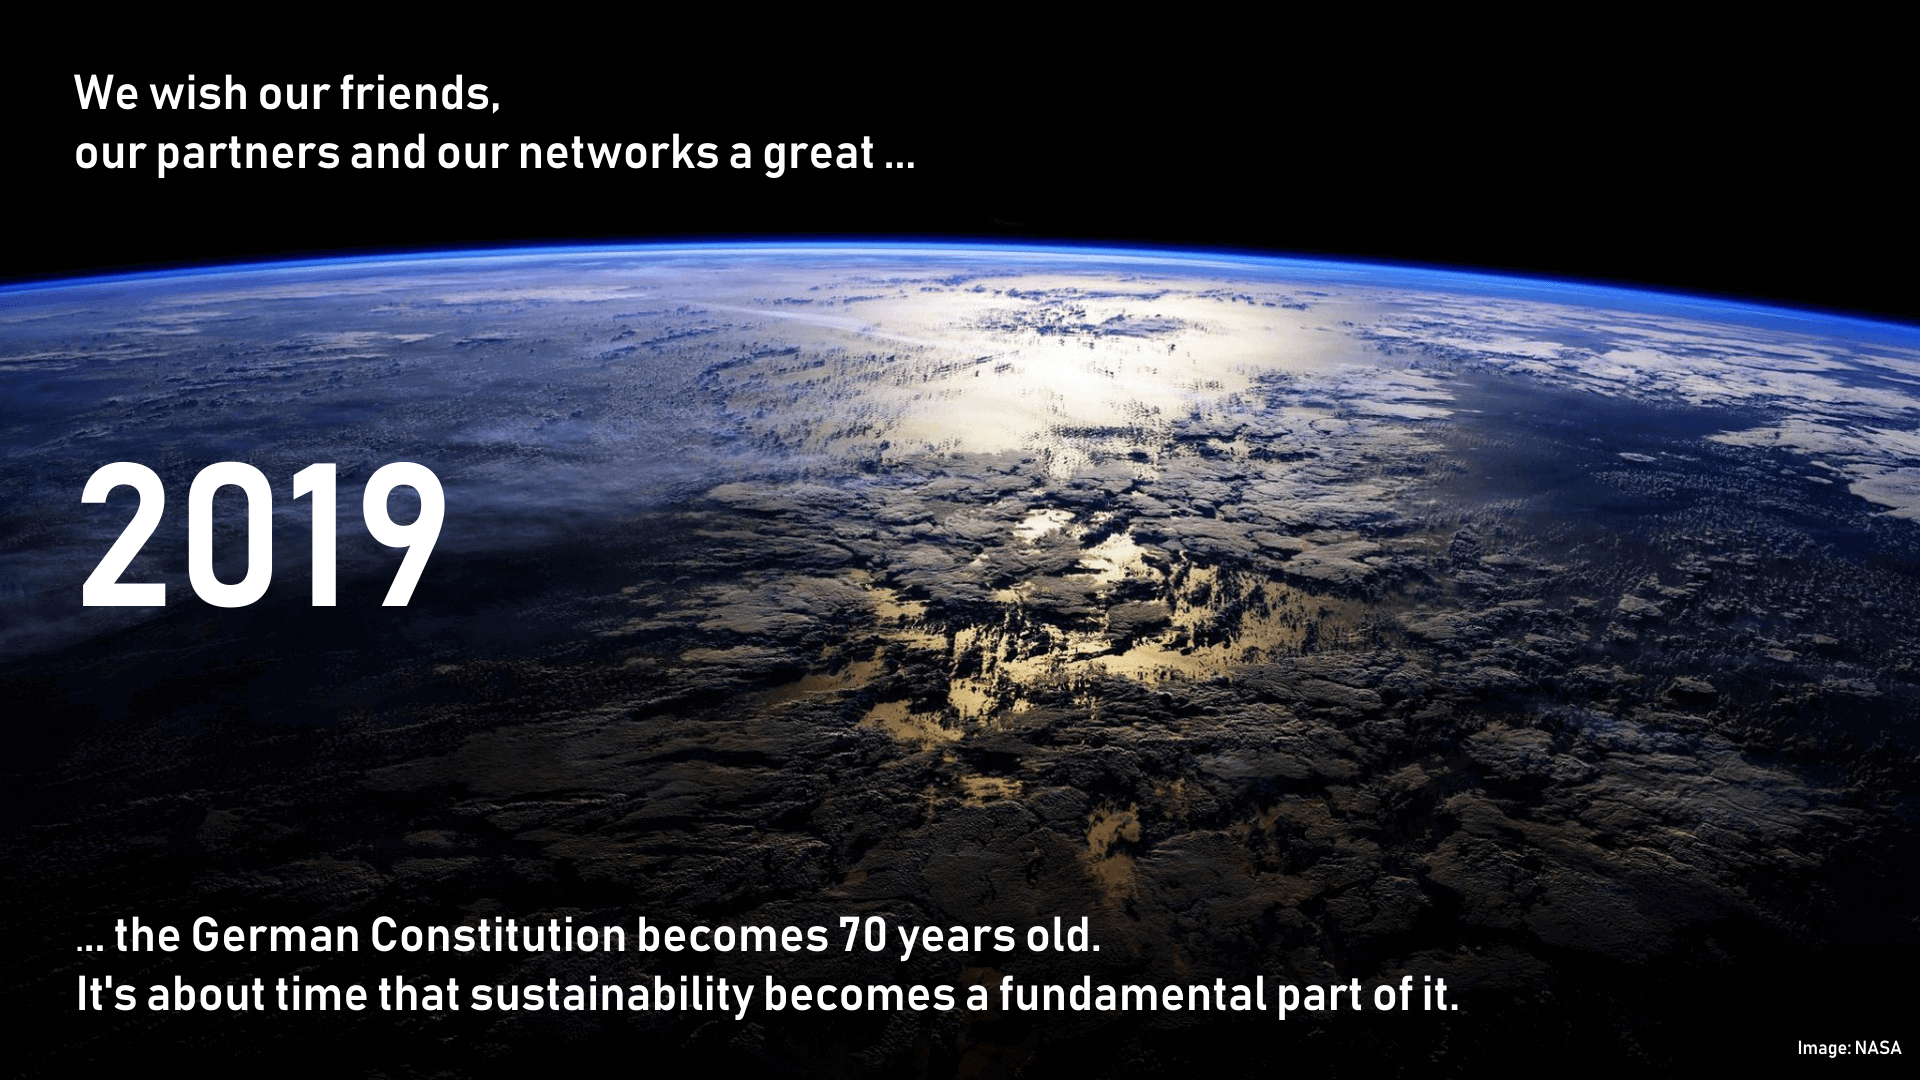 We wish our friends, our partners and our networks a great ... 2019 ... the German Constitution becomes 70 years old. It's about time that sustainability becomes a fundamental part of it.